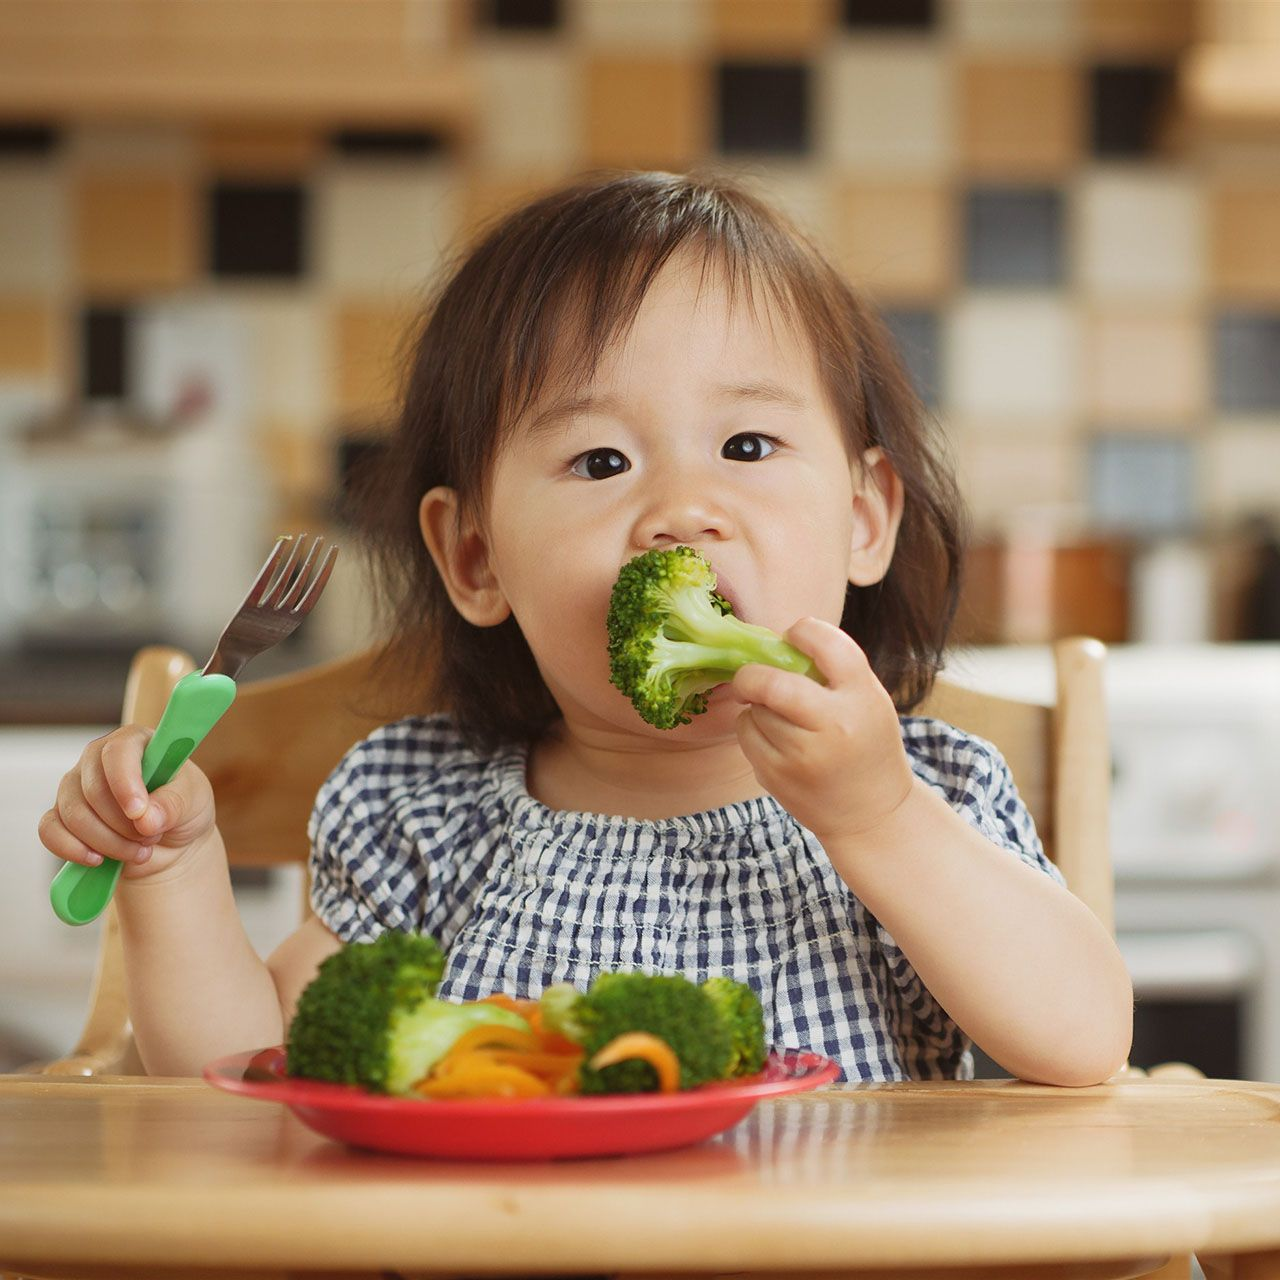 Kids, Baby, Toddler & Child Nutritionist NYC - Registered Dietitian in Manhattan, Brooklyn, Queens, Staten Island, and The Bronx